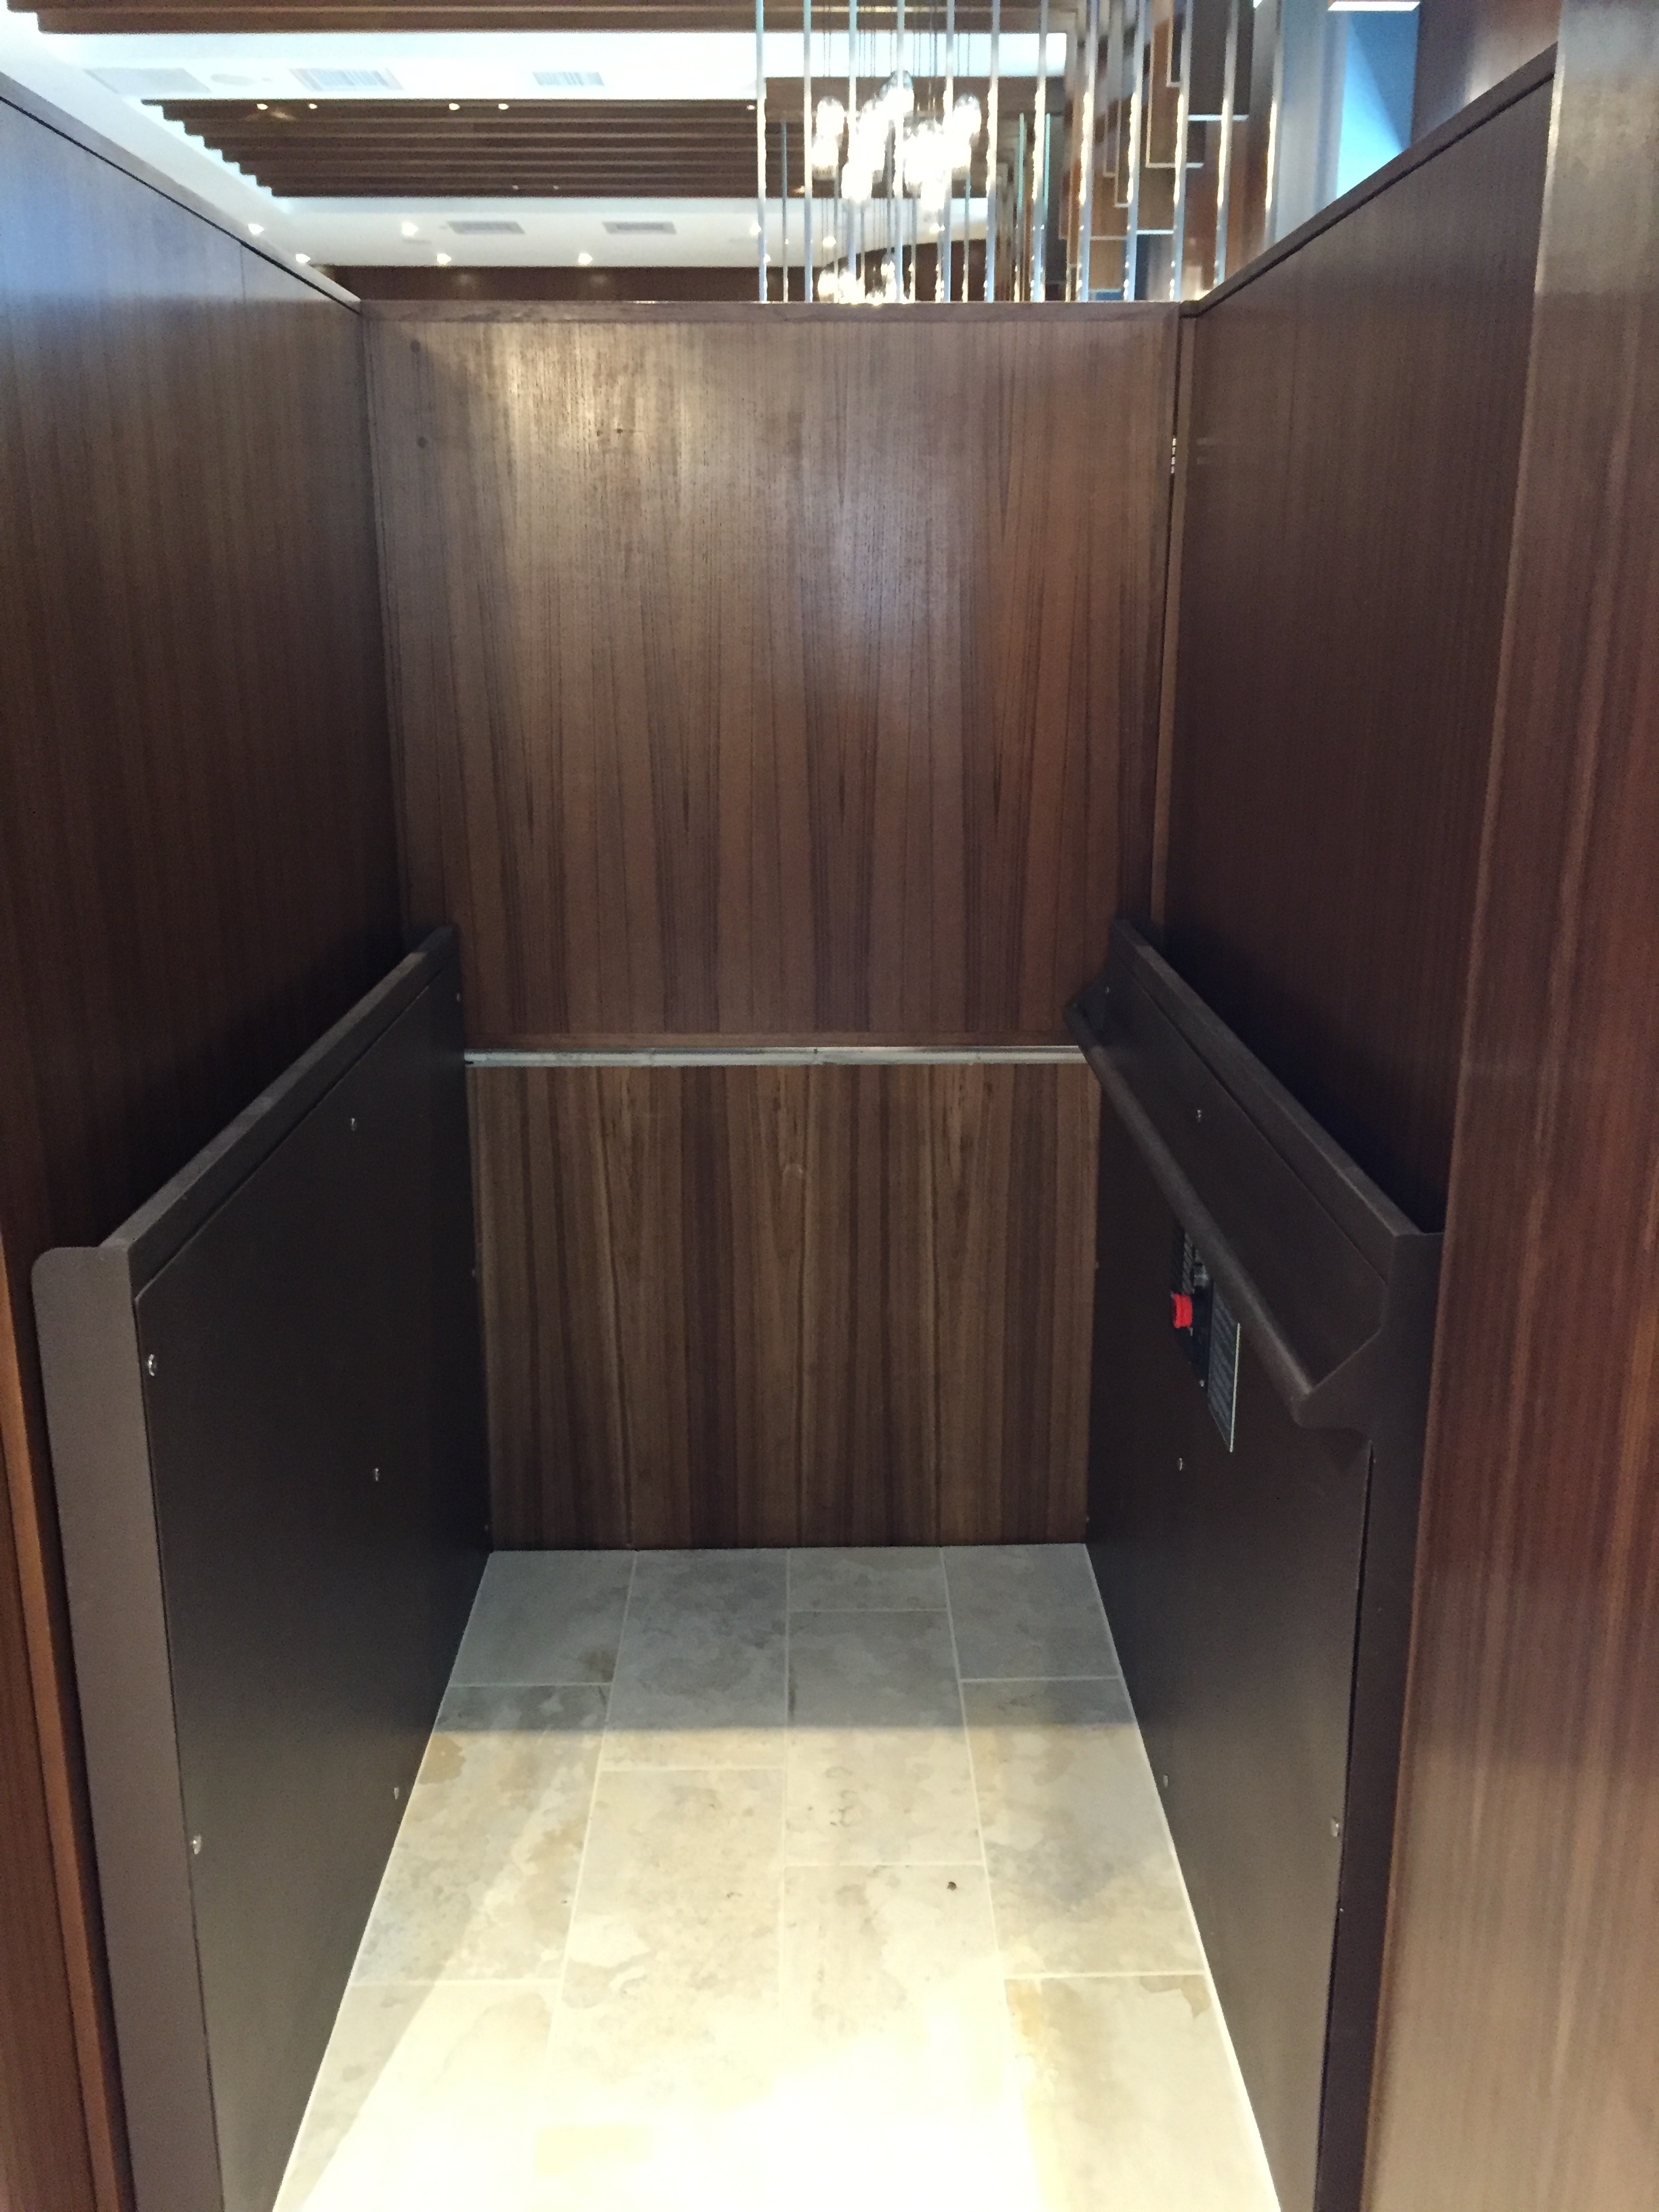 Lower level door opened. Close-up view of lift platform from lower level approach. Lift encased in wood millwork blending in with surrounding aesthetics. Lift function readily available, independently operable.